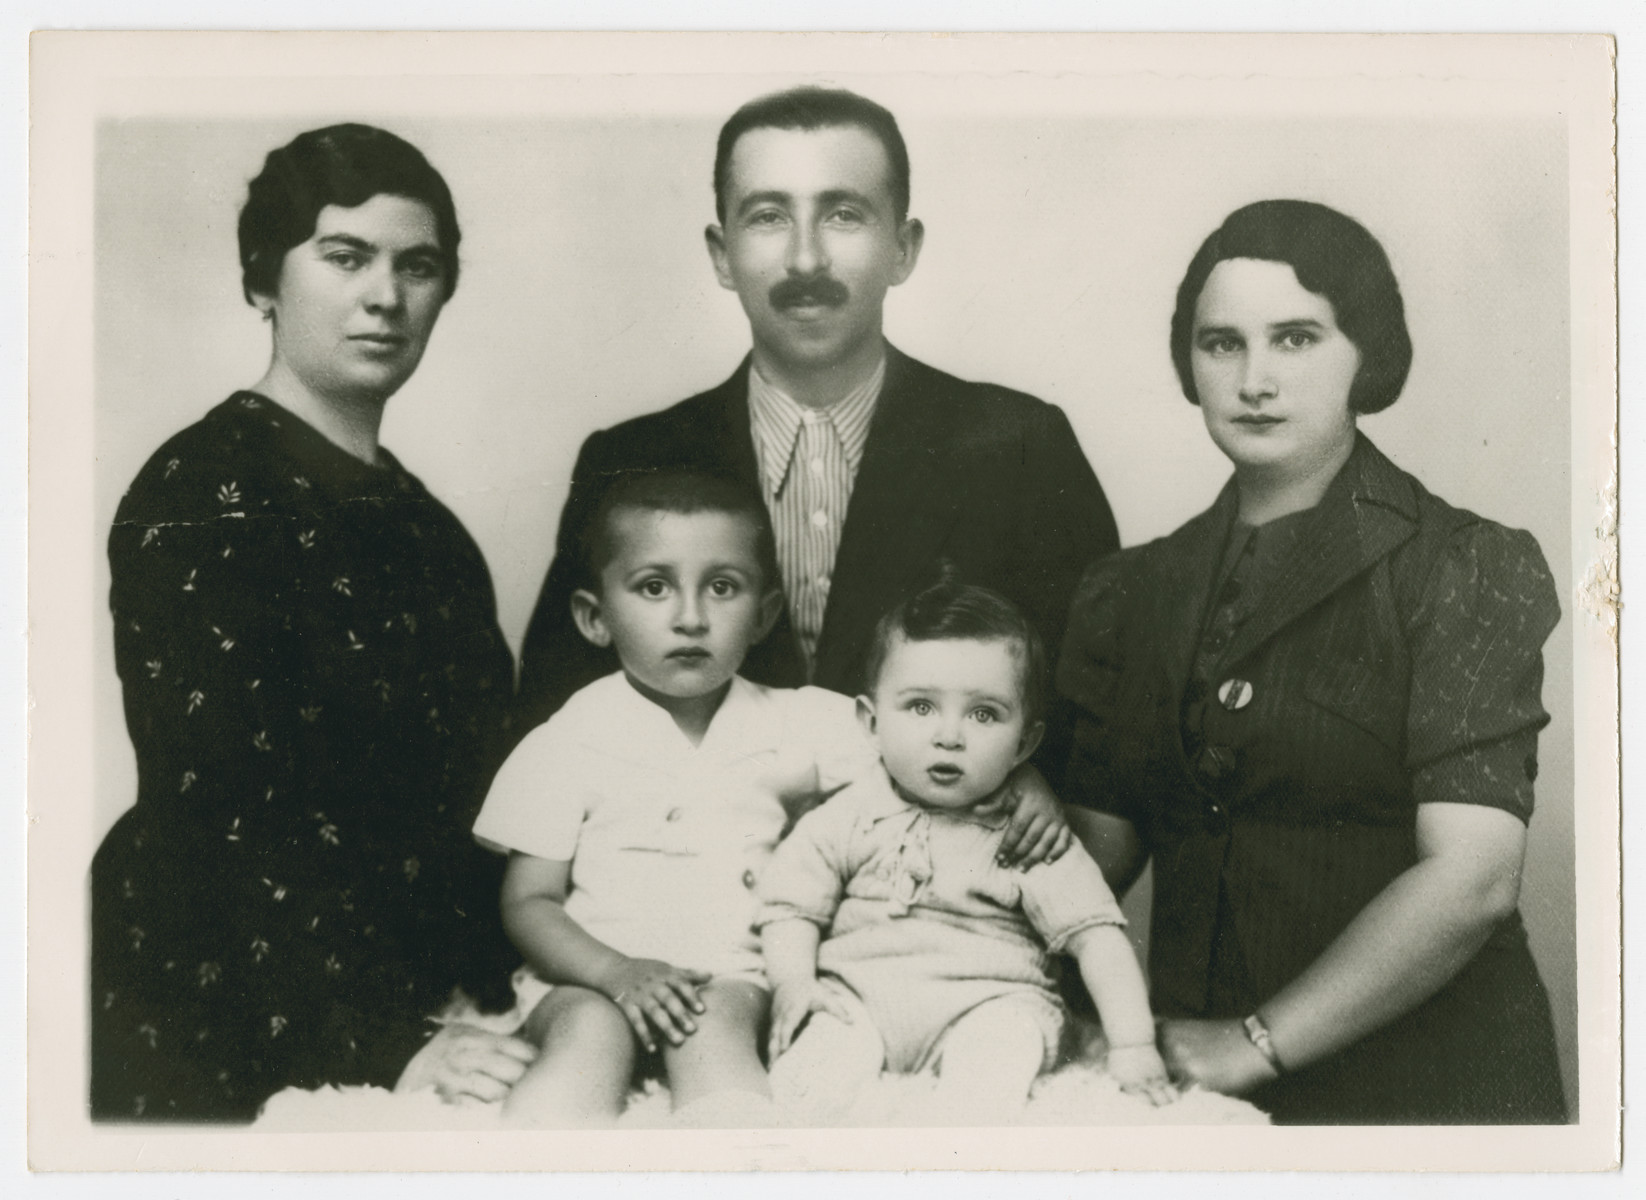 Sandor and Ilona Seidenfeld pose with Ilona's step-mother Yudel (far left)  and their sons Ezra and Mordche.